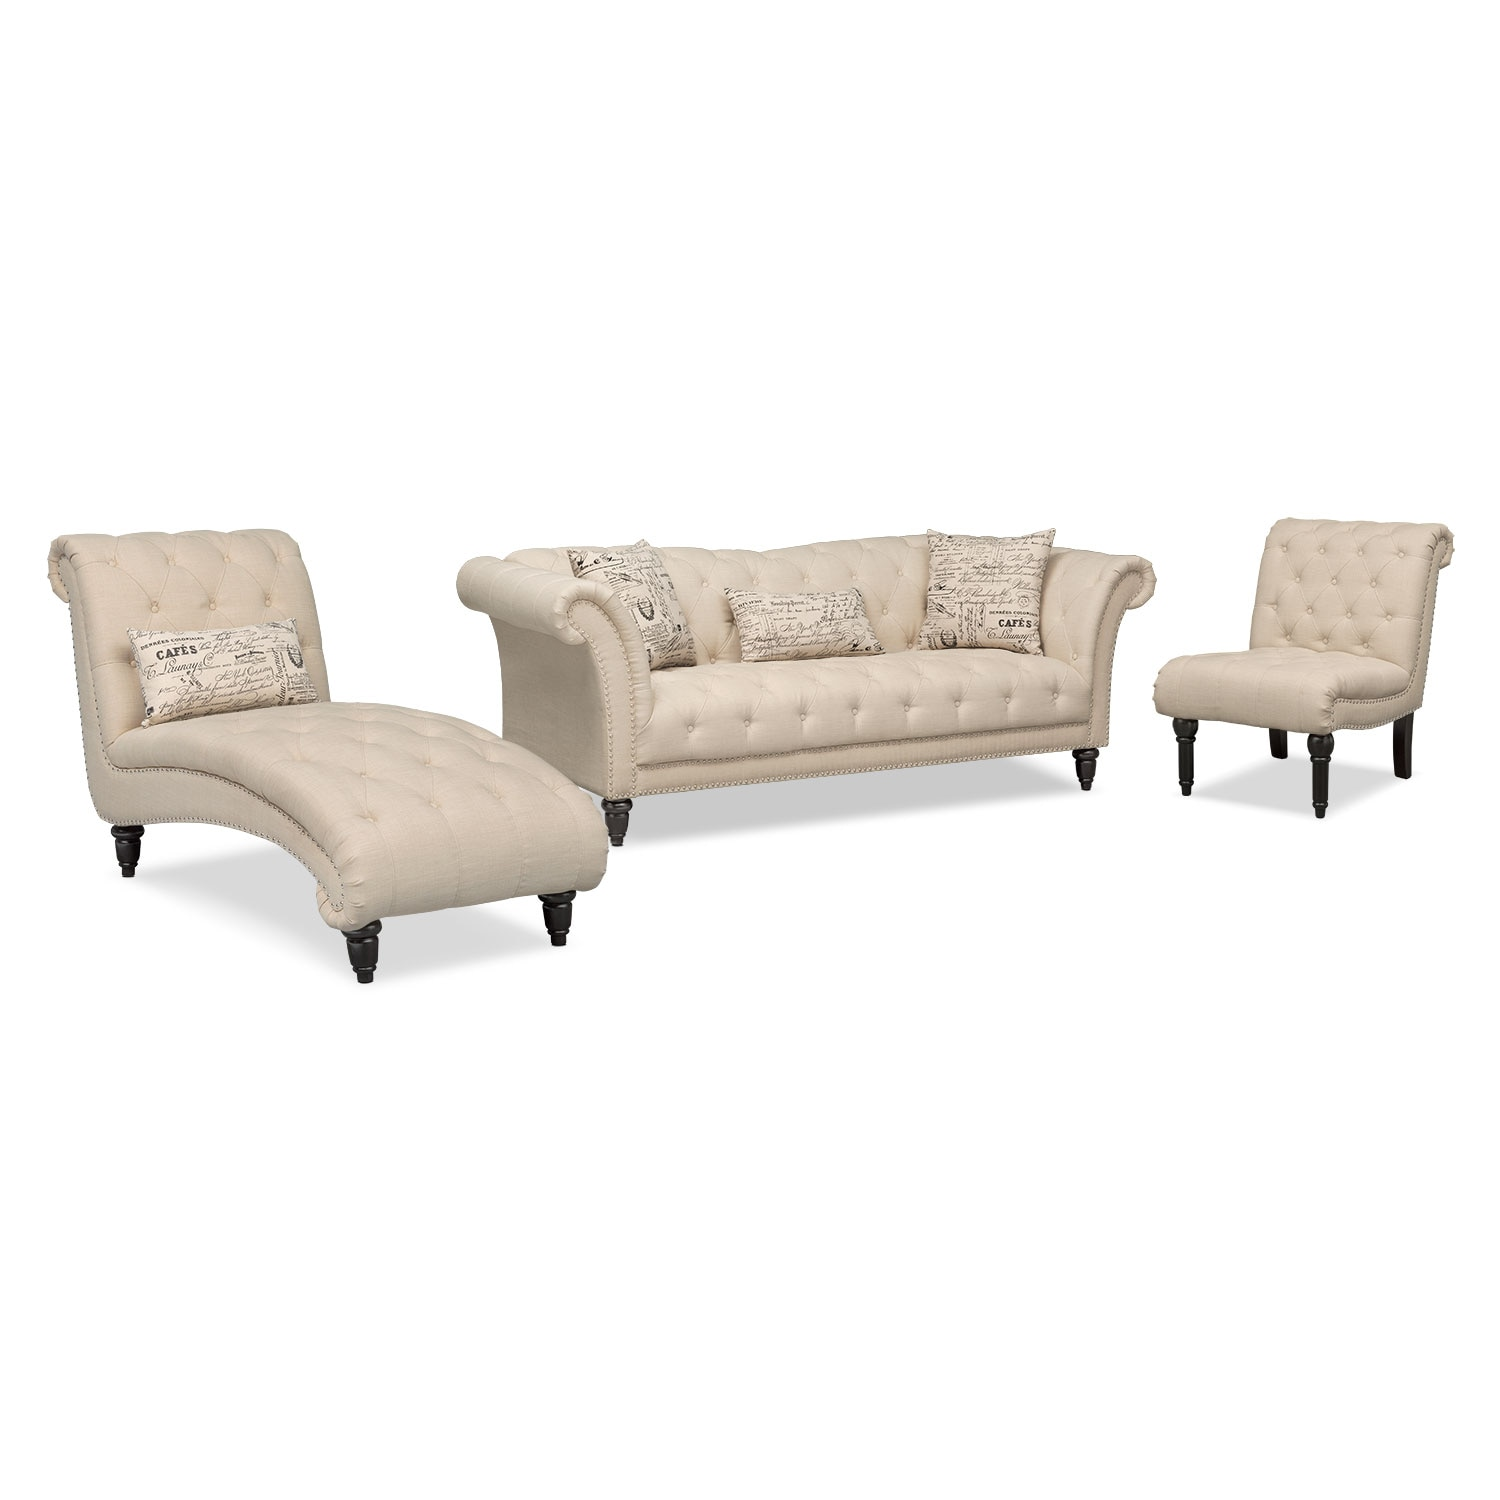 Marisol Sofa, Chaise and Armless Chair  Beige  Value